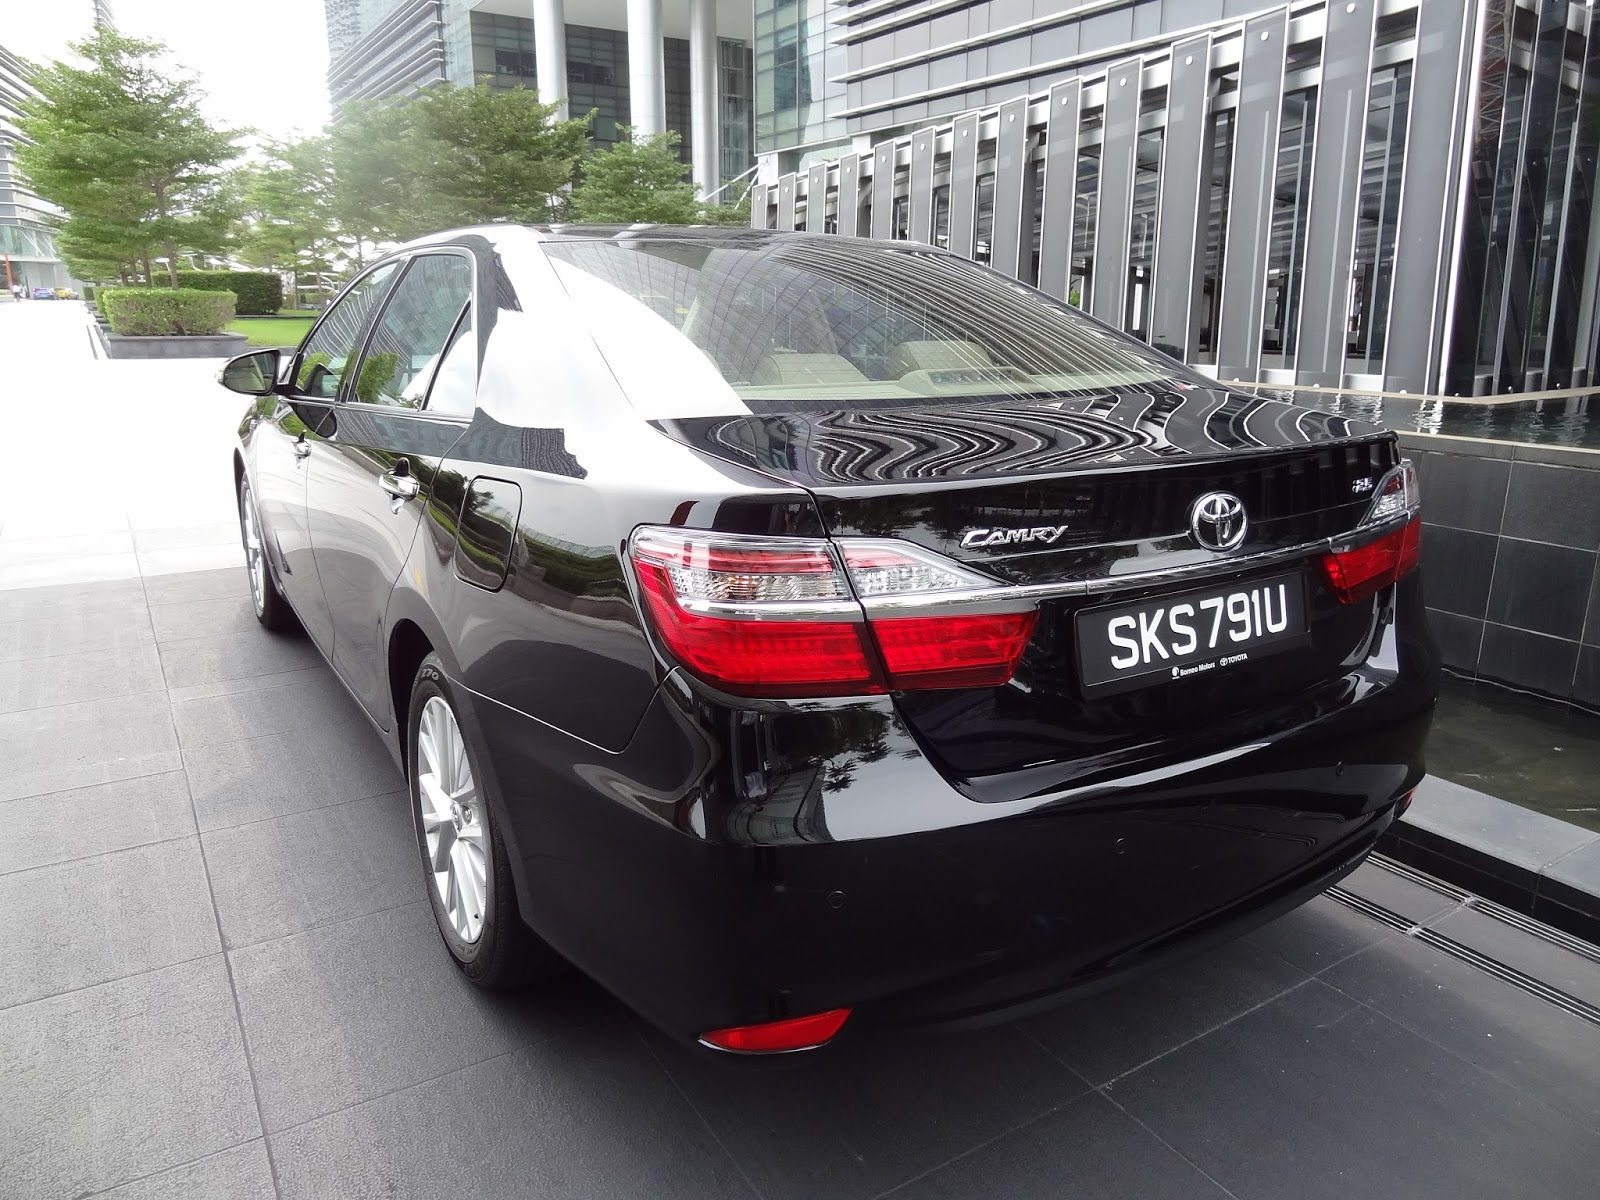 All New Camry Singapore 2018 Thailand Shaun Owyeong 2015 Toyota 2 5 A Class Leading Executive Sedan The Continues To Be Benchmark That Constantly Evolves Set Standards And Is Available In 3 Variants 0l 5l Hybrid